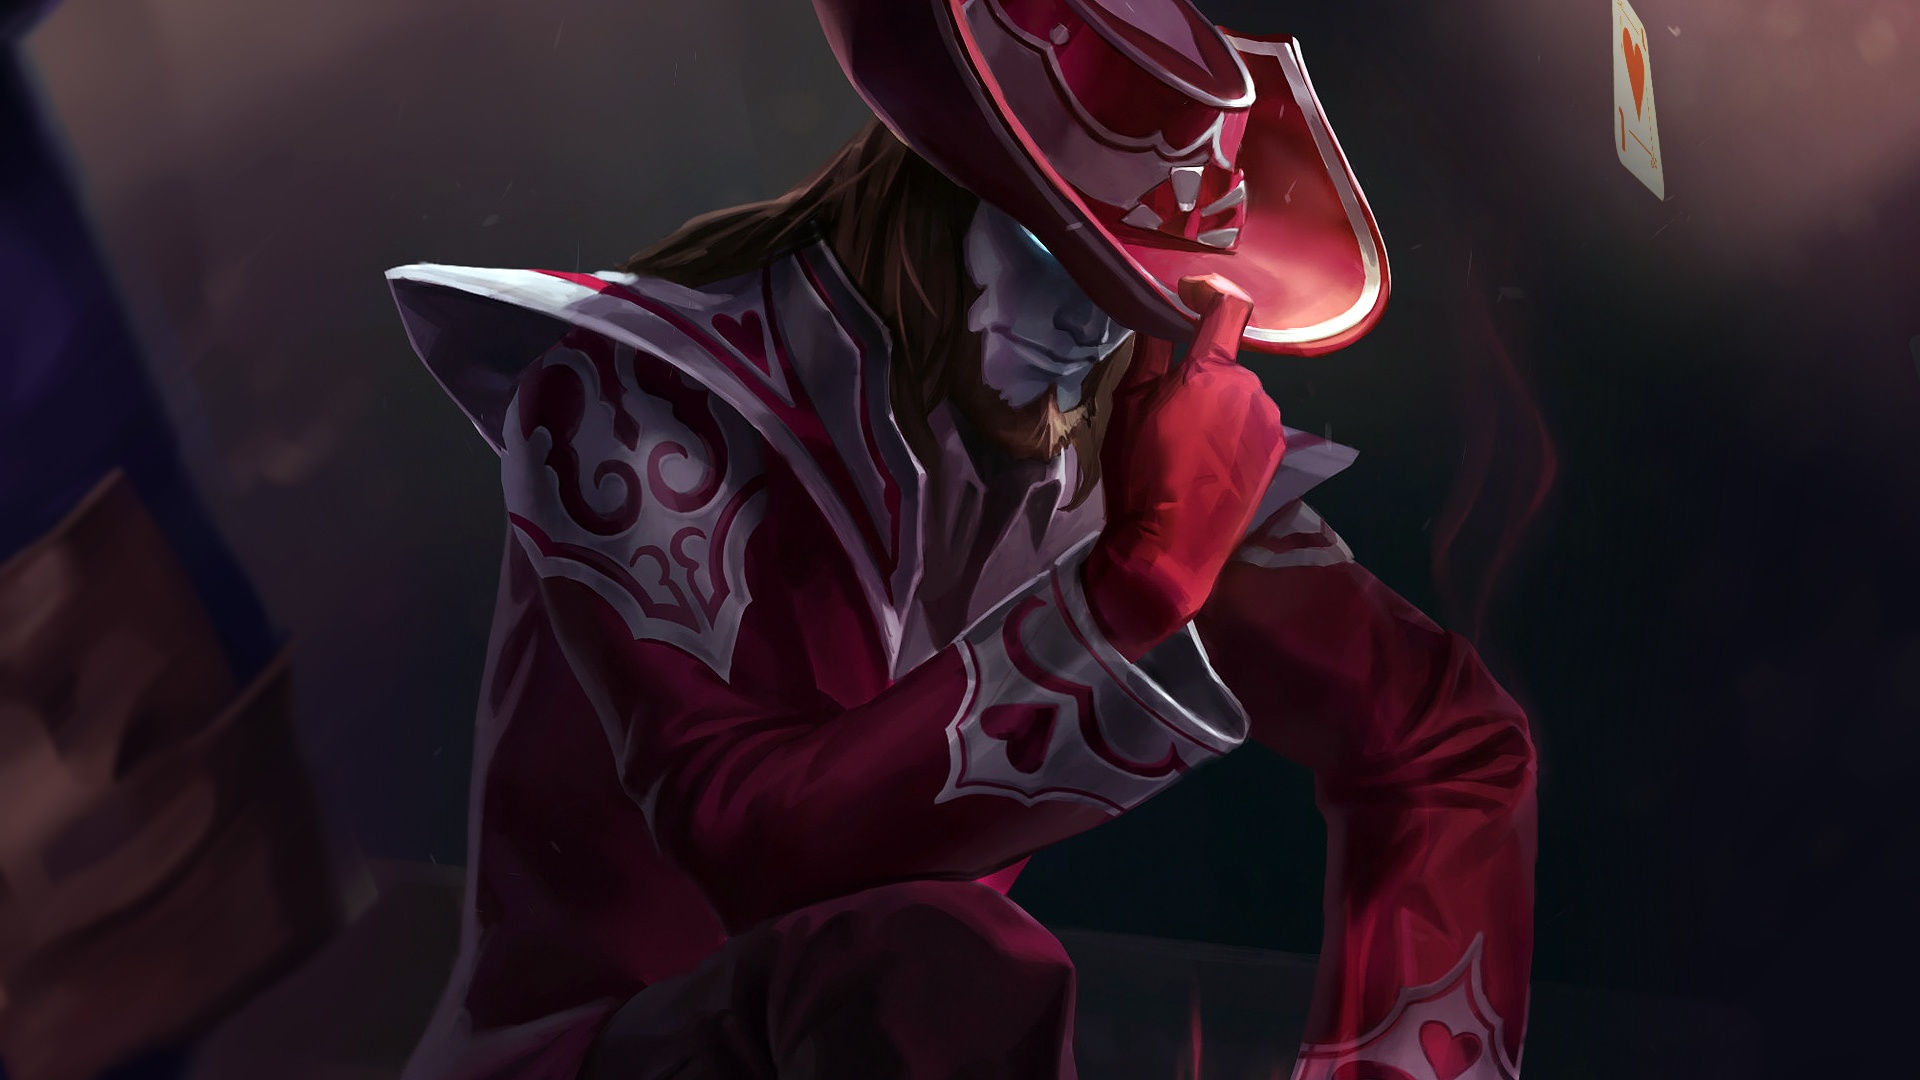 jack-of-hearts-twisted-fate-playing-card-skin-hd-1920x1080-×-wallpaper-wpc9006692